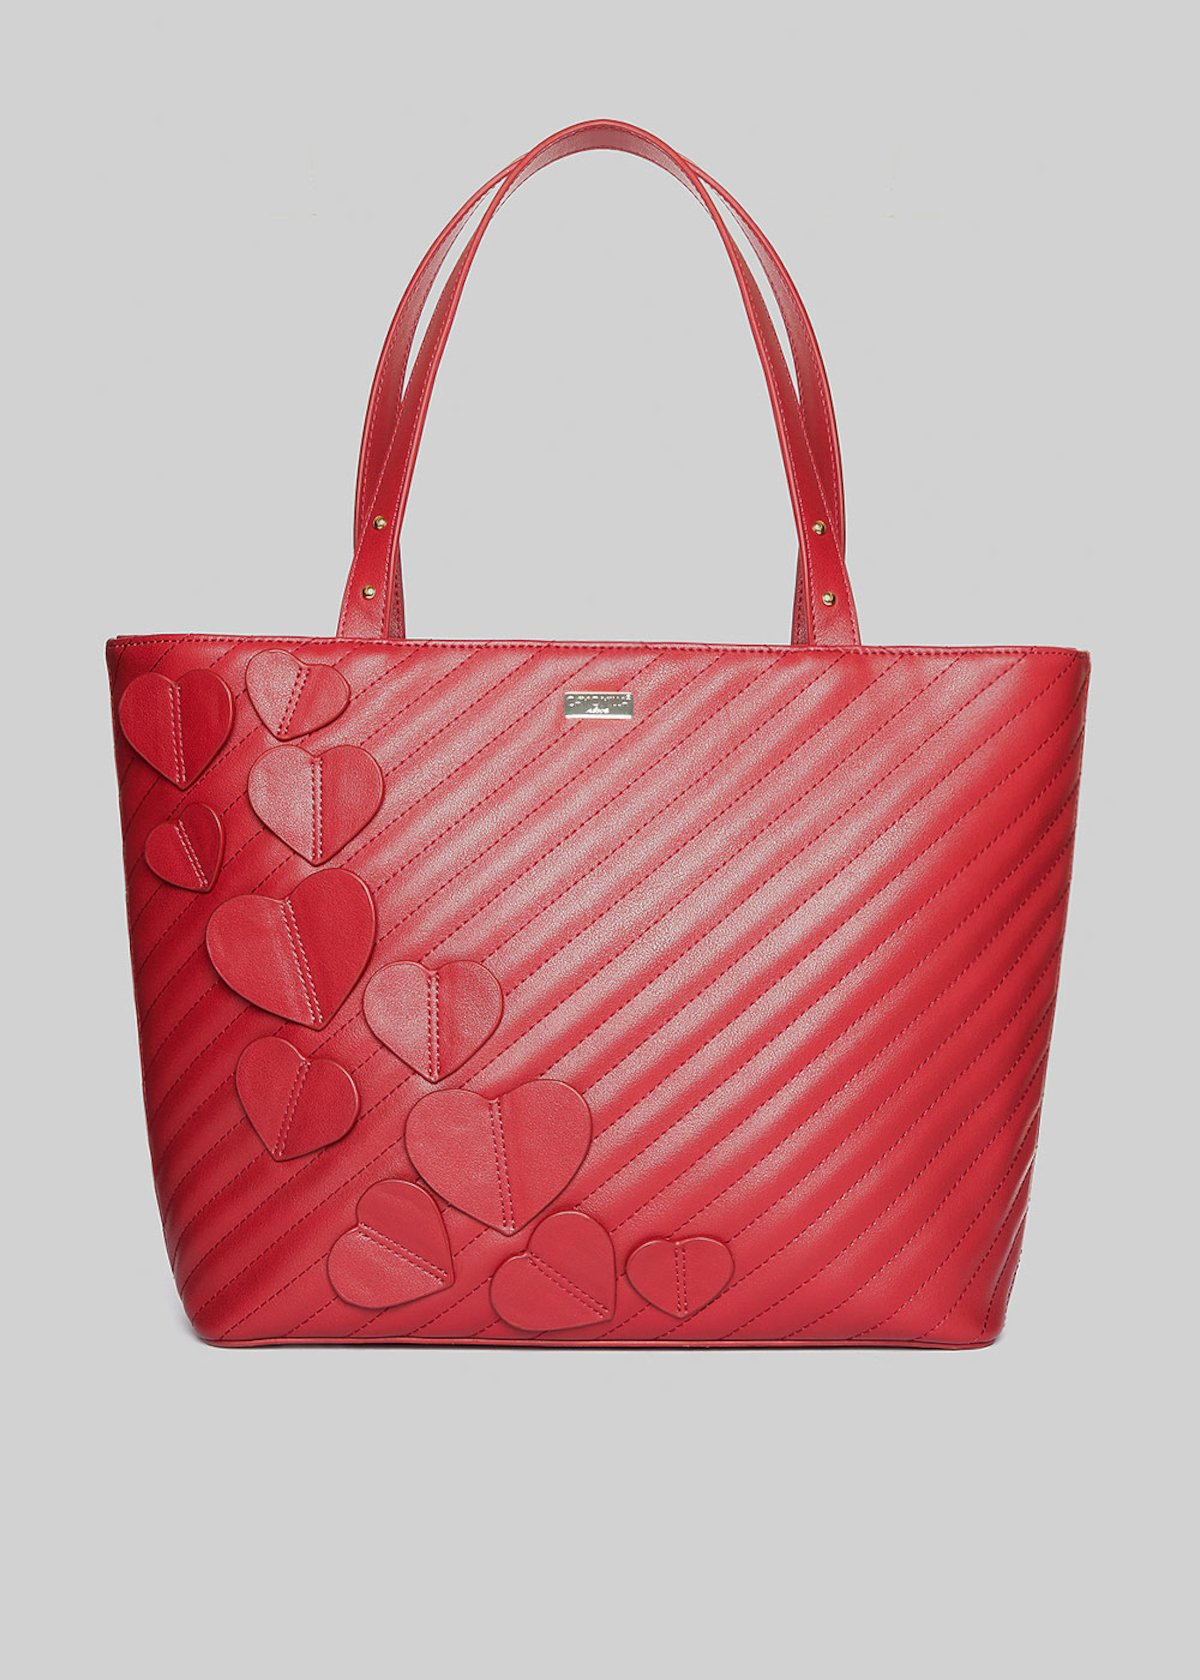 Shopping bag Baika con cuori applicati